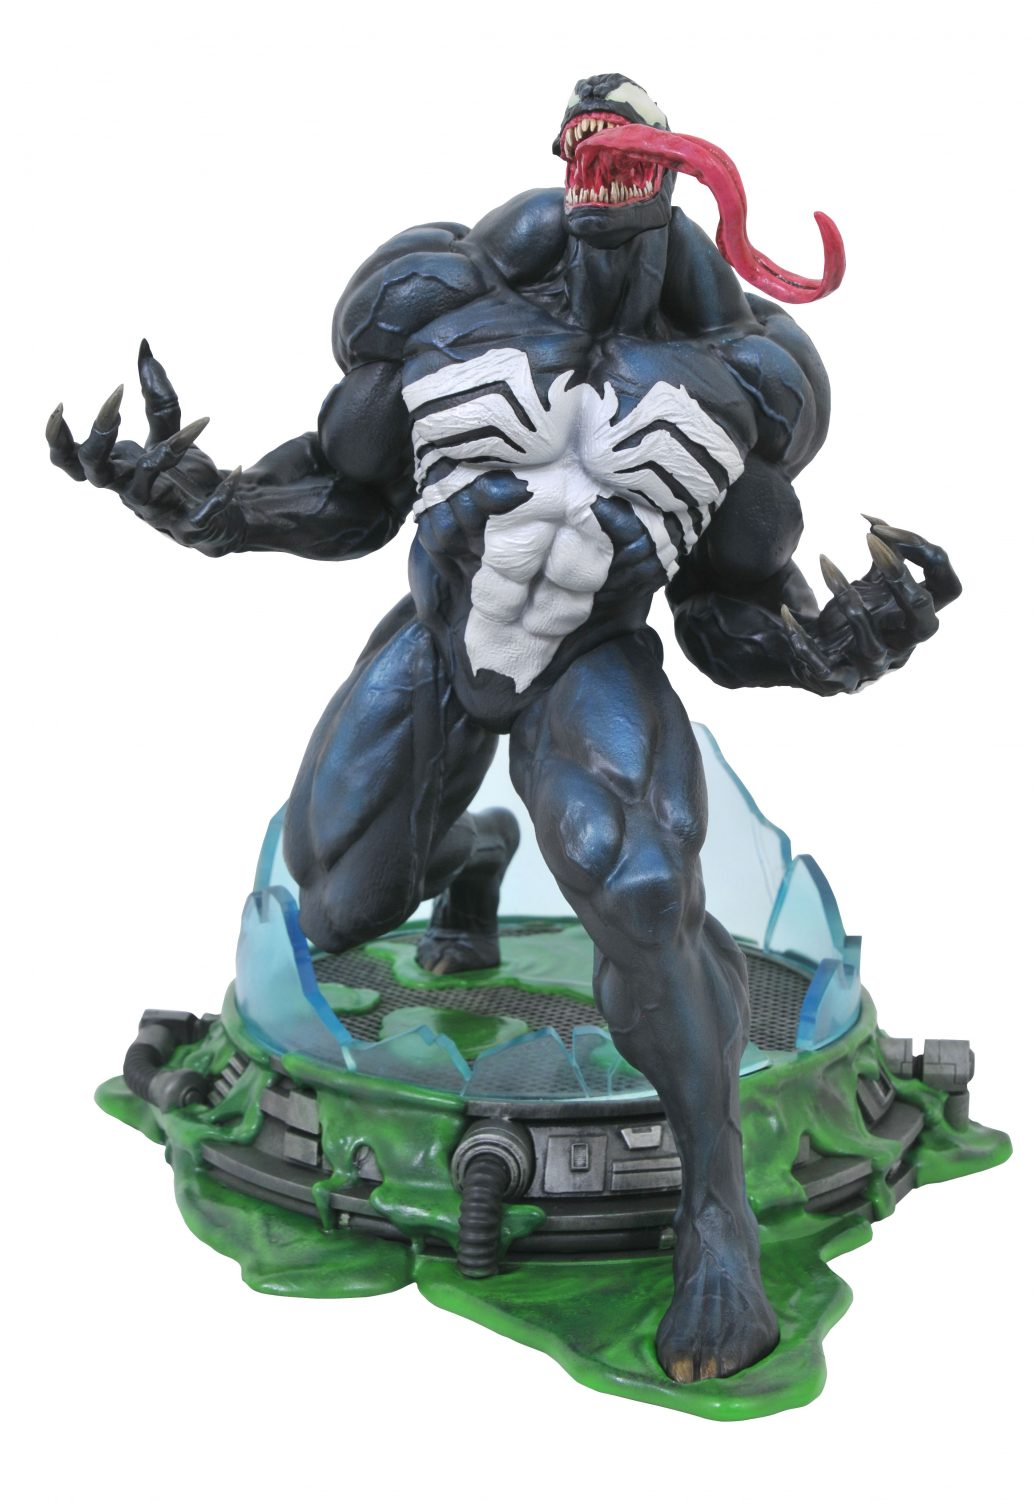 Diamond Select Toys Shipping This Week – Marvel Premier Collection Venom Statue